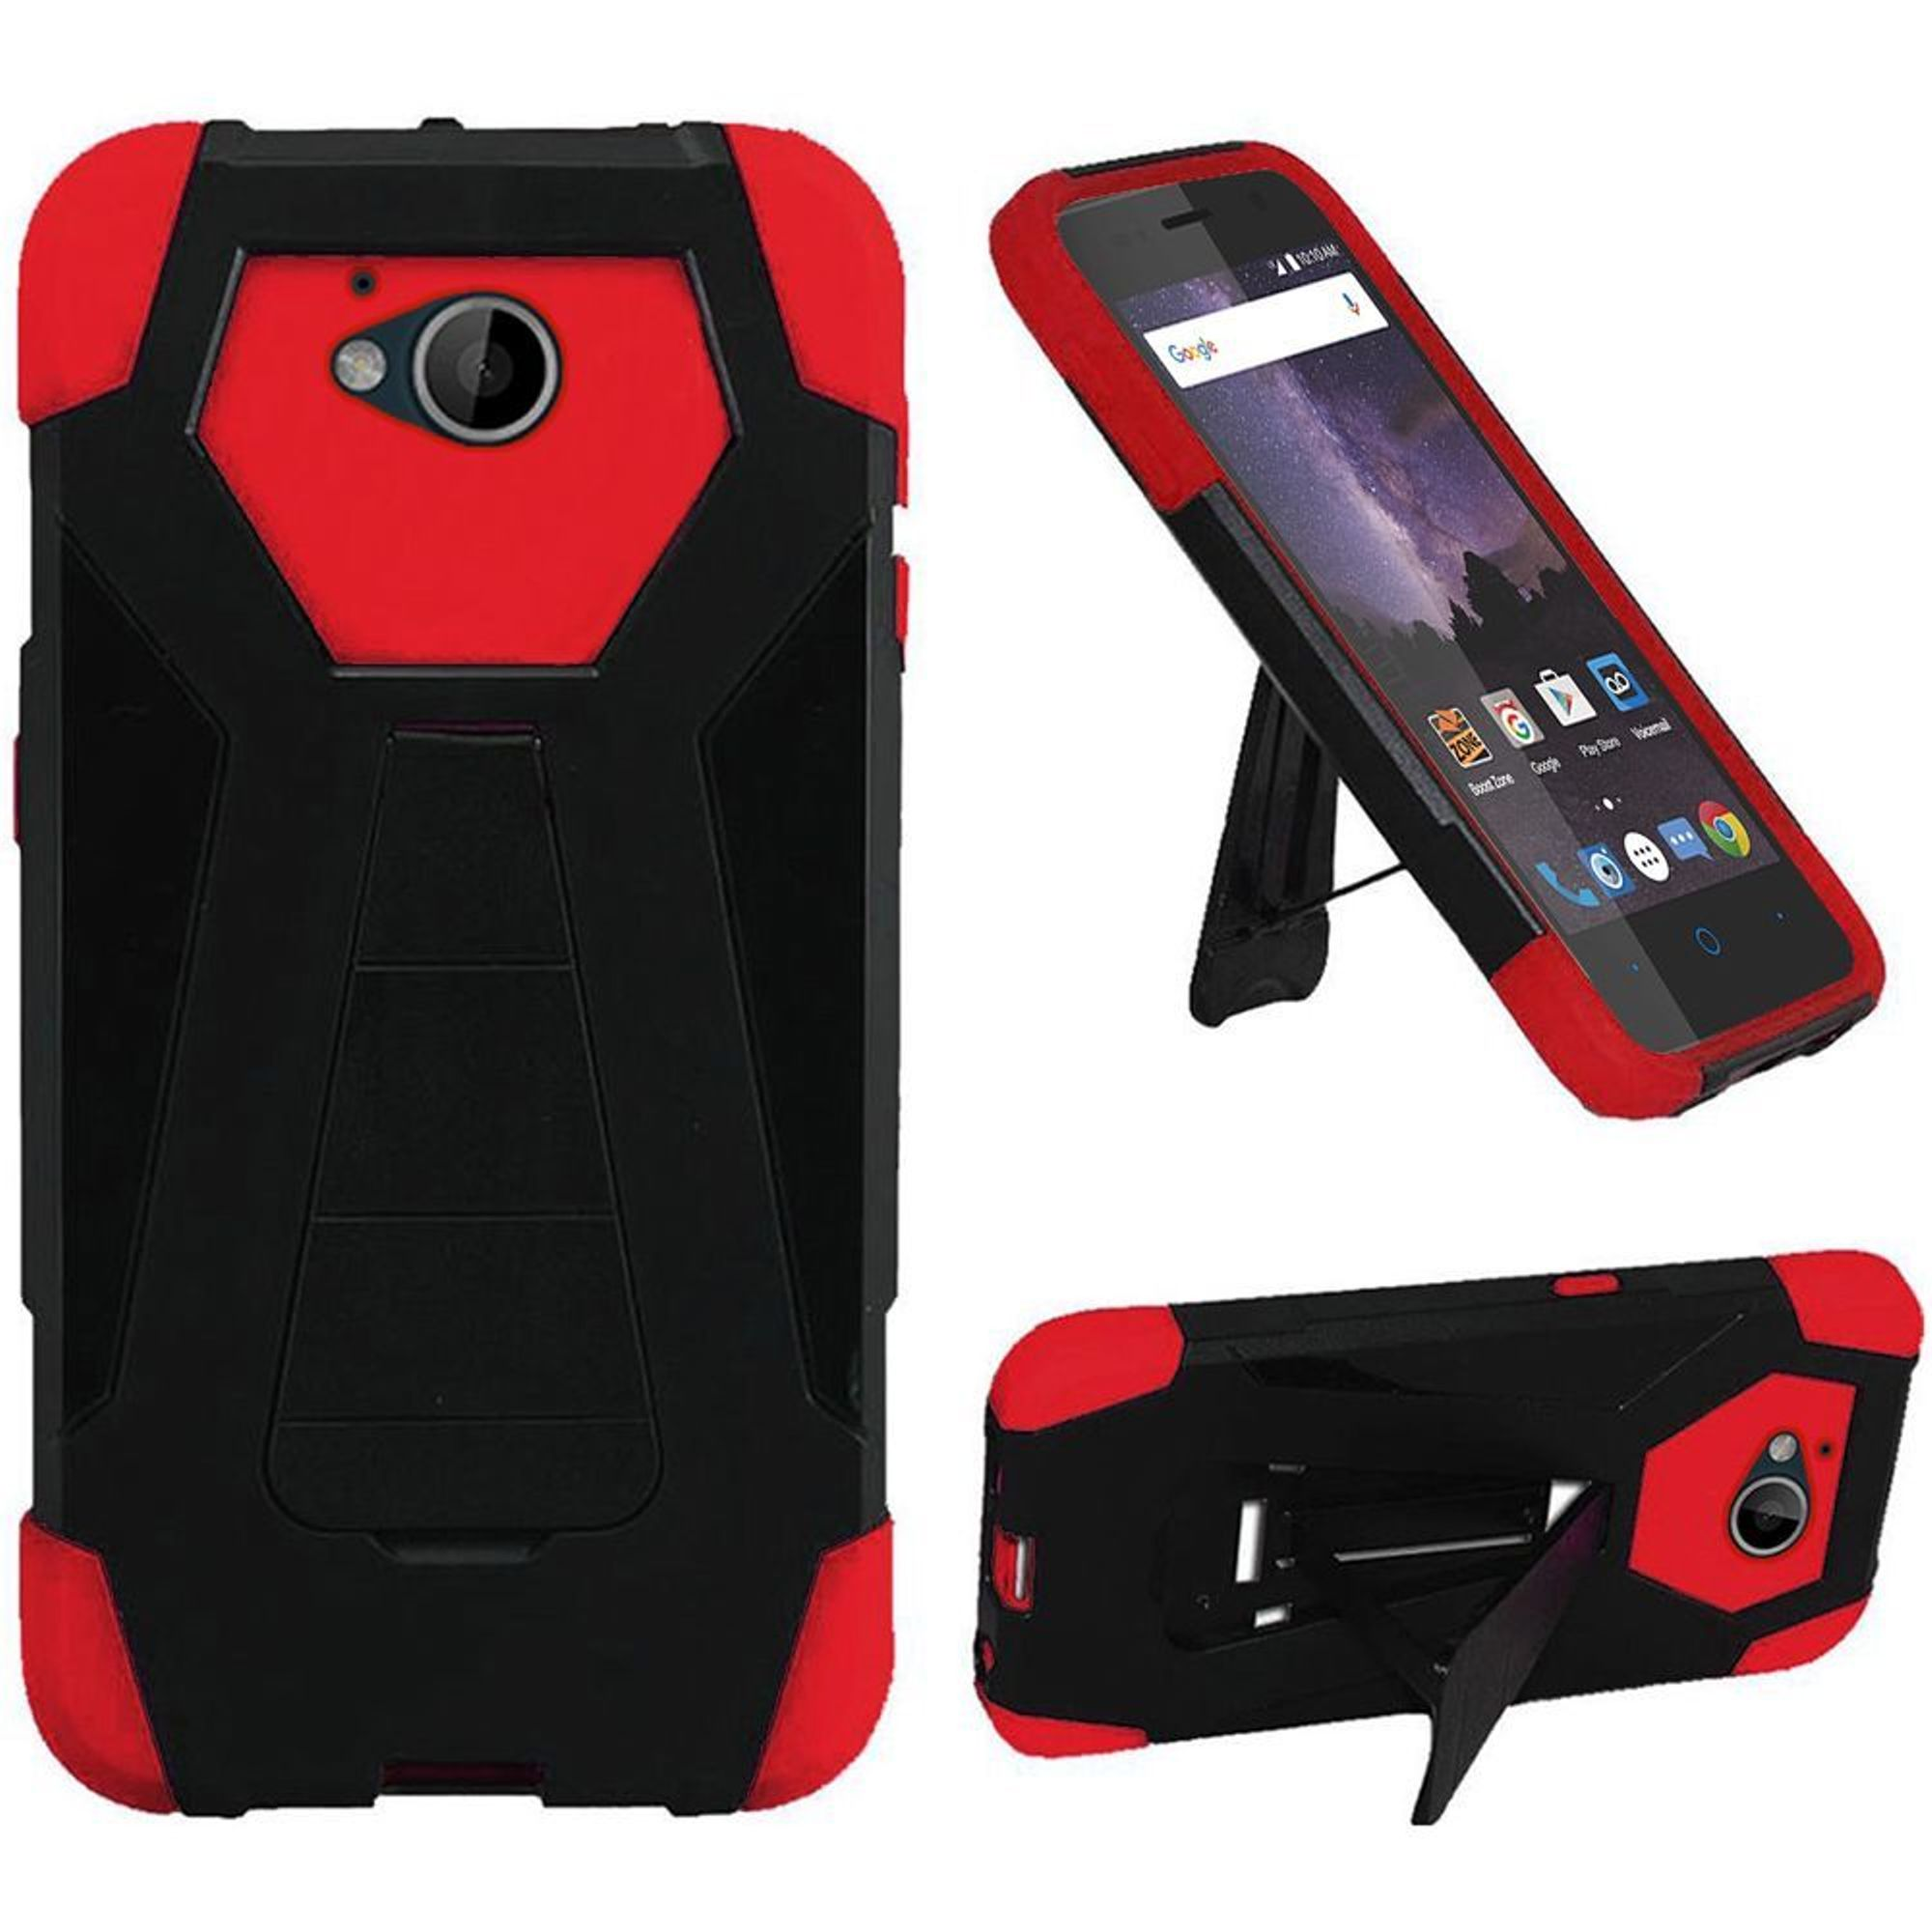 ZTE Majesty Pro LTE/Tempo Case, by HR Wireless Dual Layer Hybrid Stand Hard Plastic/Soft Silicone Case Cover For ZTE Majesty Pro LTE Z799VL/Tempo, Black/Red